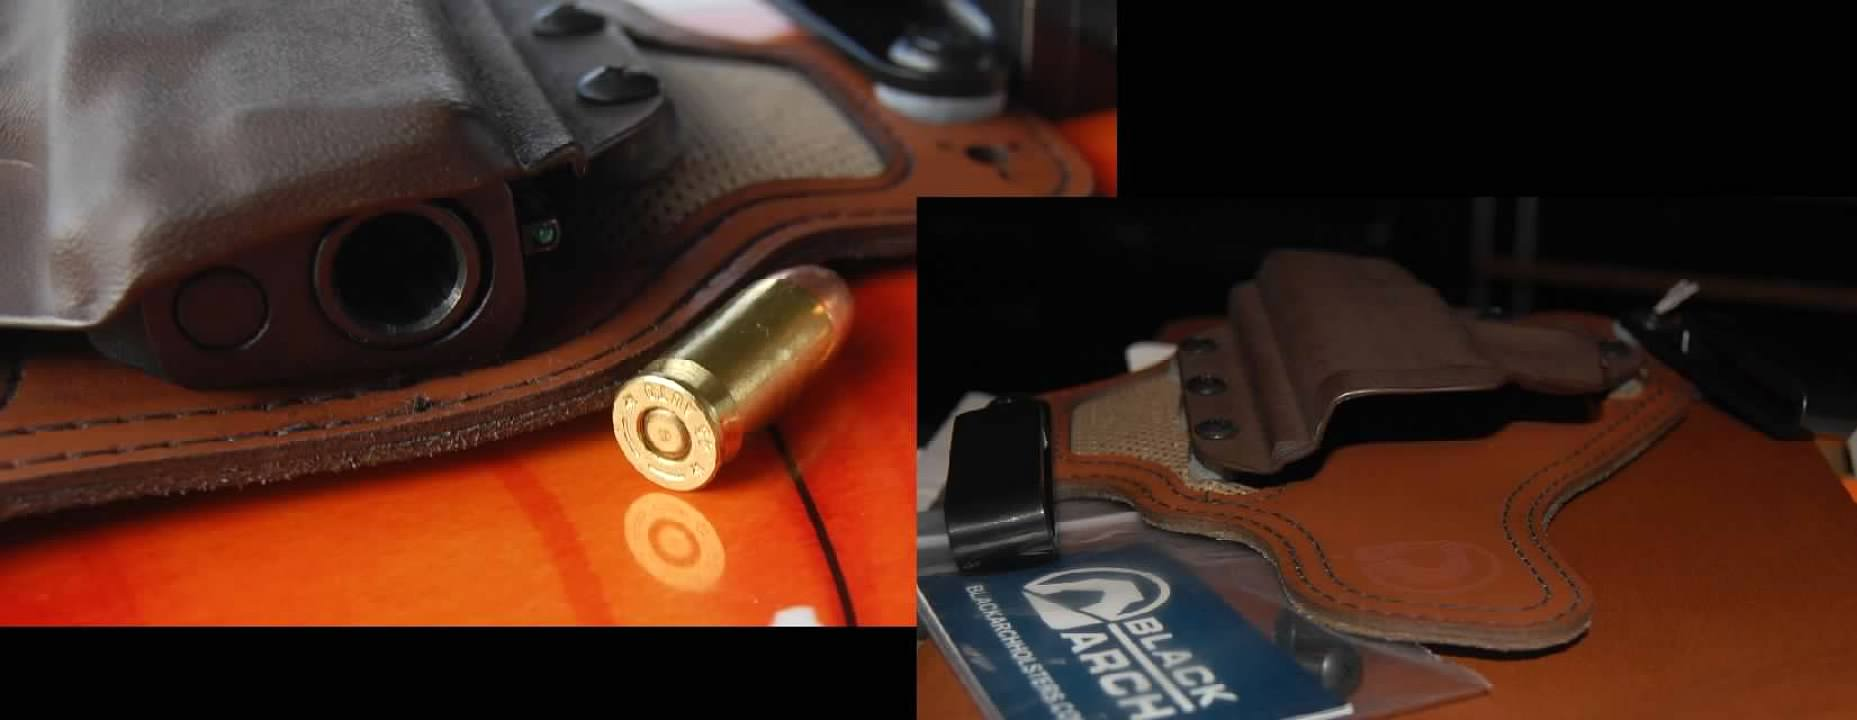 SHIELD  45 ACCURACY ISSUES - MP-Pistol Forum